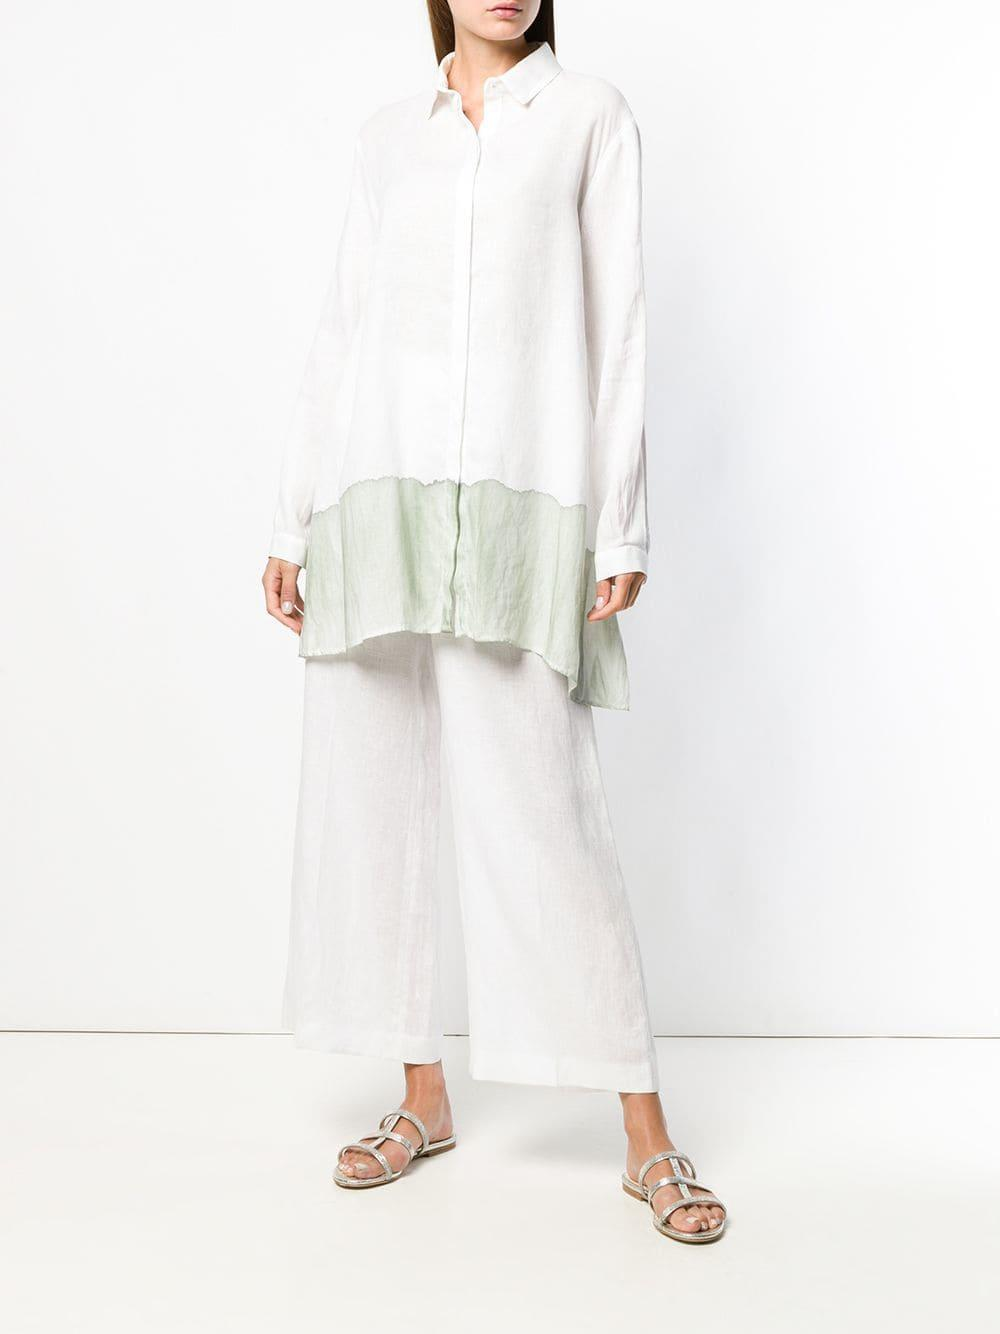 ce6efd4ed987a Lyst - Fabiana Filippi Stained-effect Shirt in White